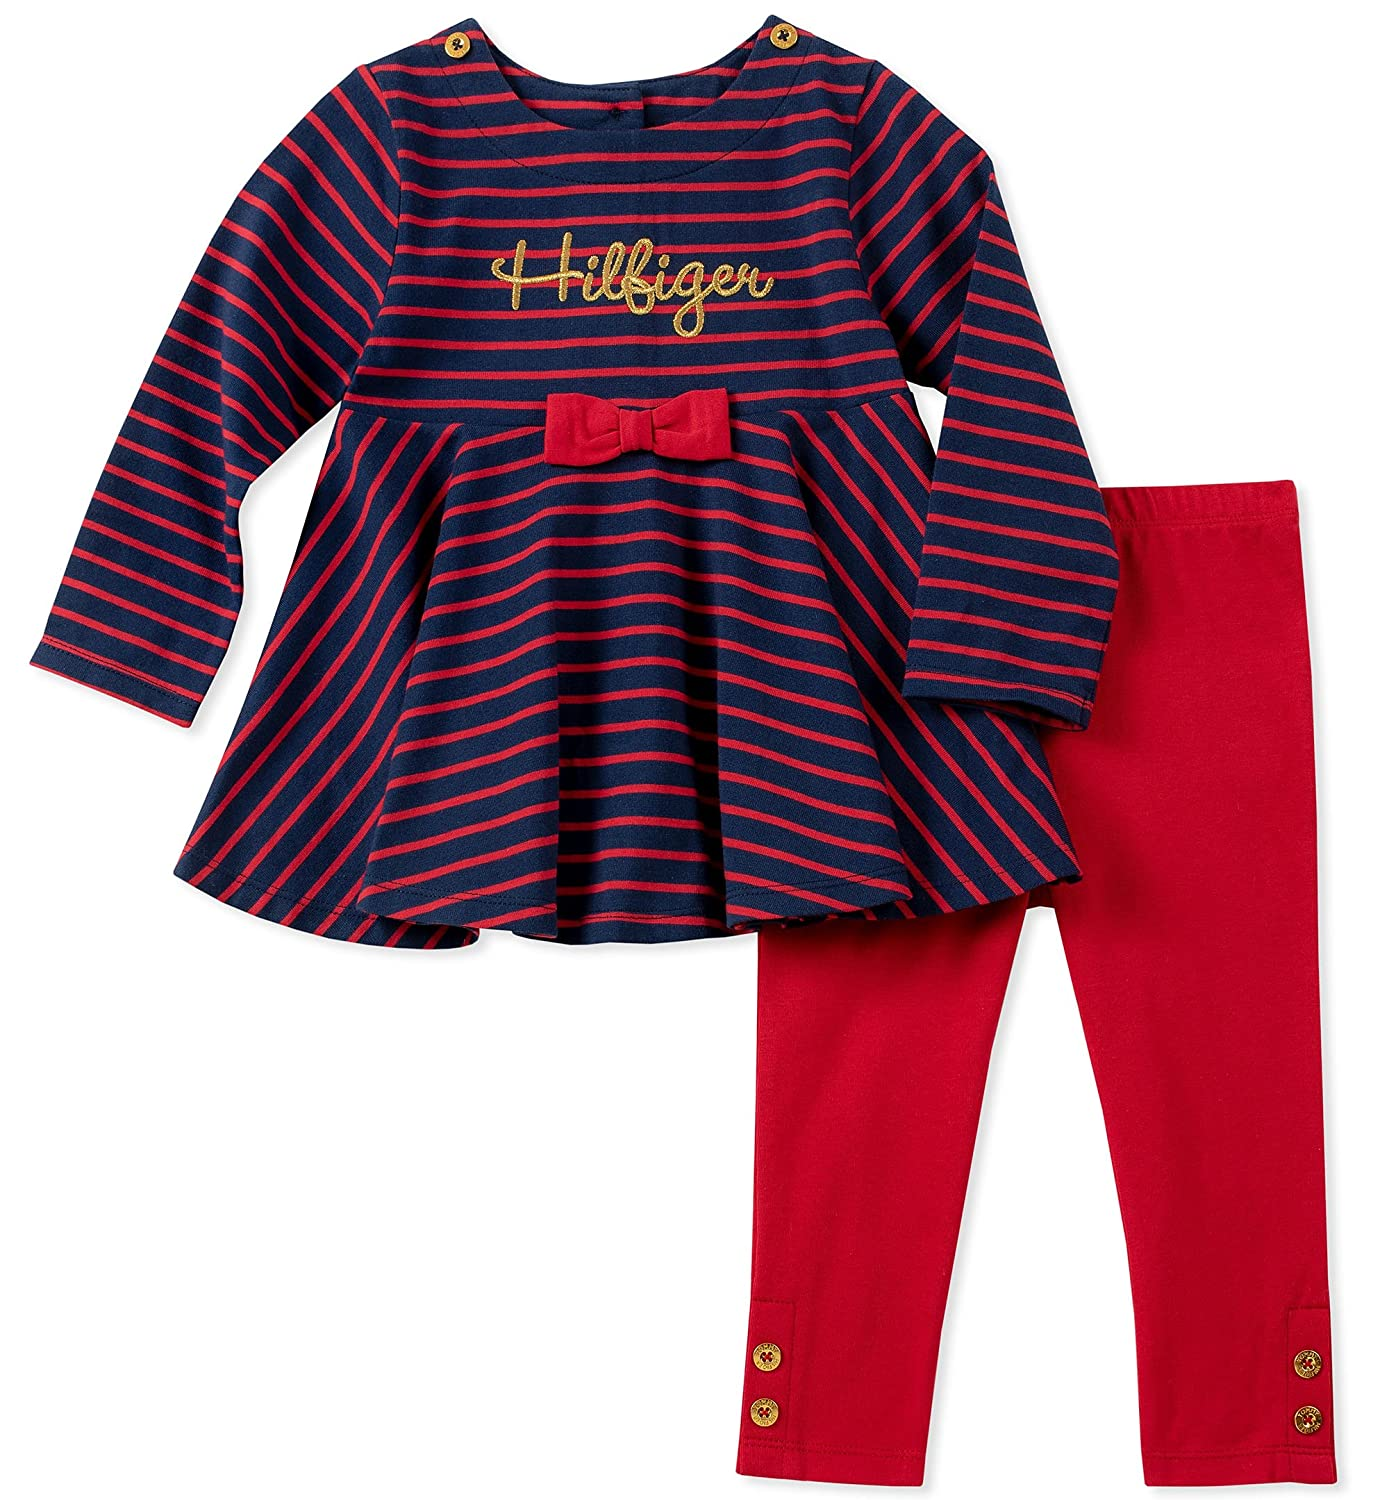 日本に Tommy Misses Navy Hilfiger PANTS ベビーガールズ 12 Misses Hilfiger Red/Core Navy B079JDJB4X, ★日本の職人技★:d4b57708 --- a0267596.xsph.ru